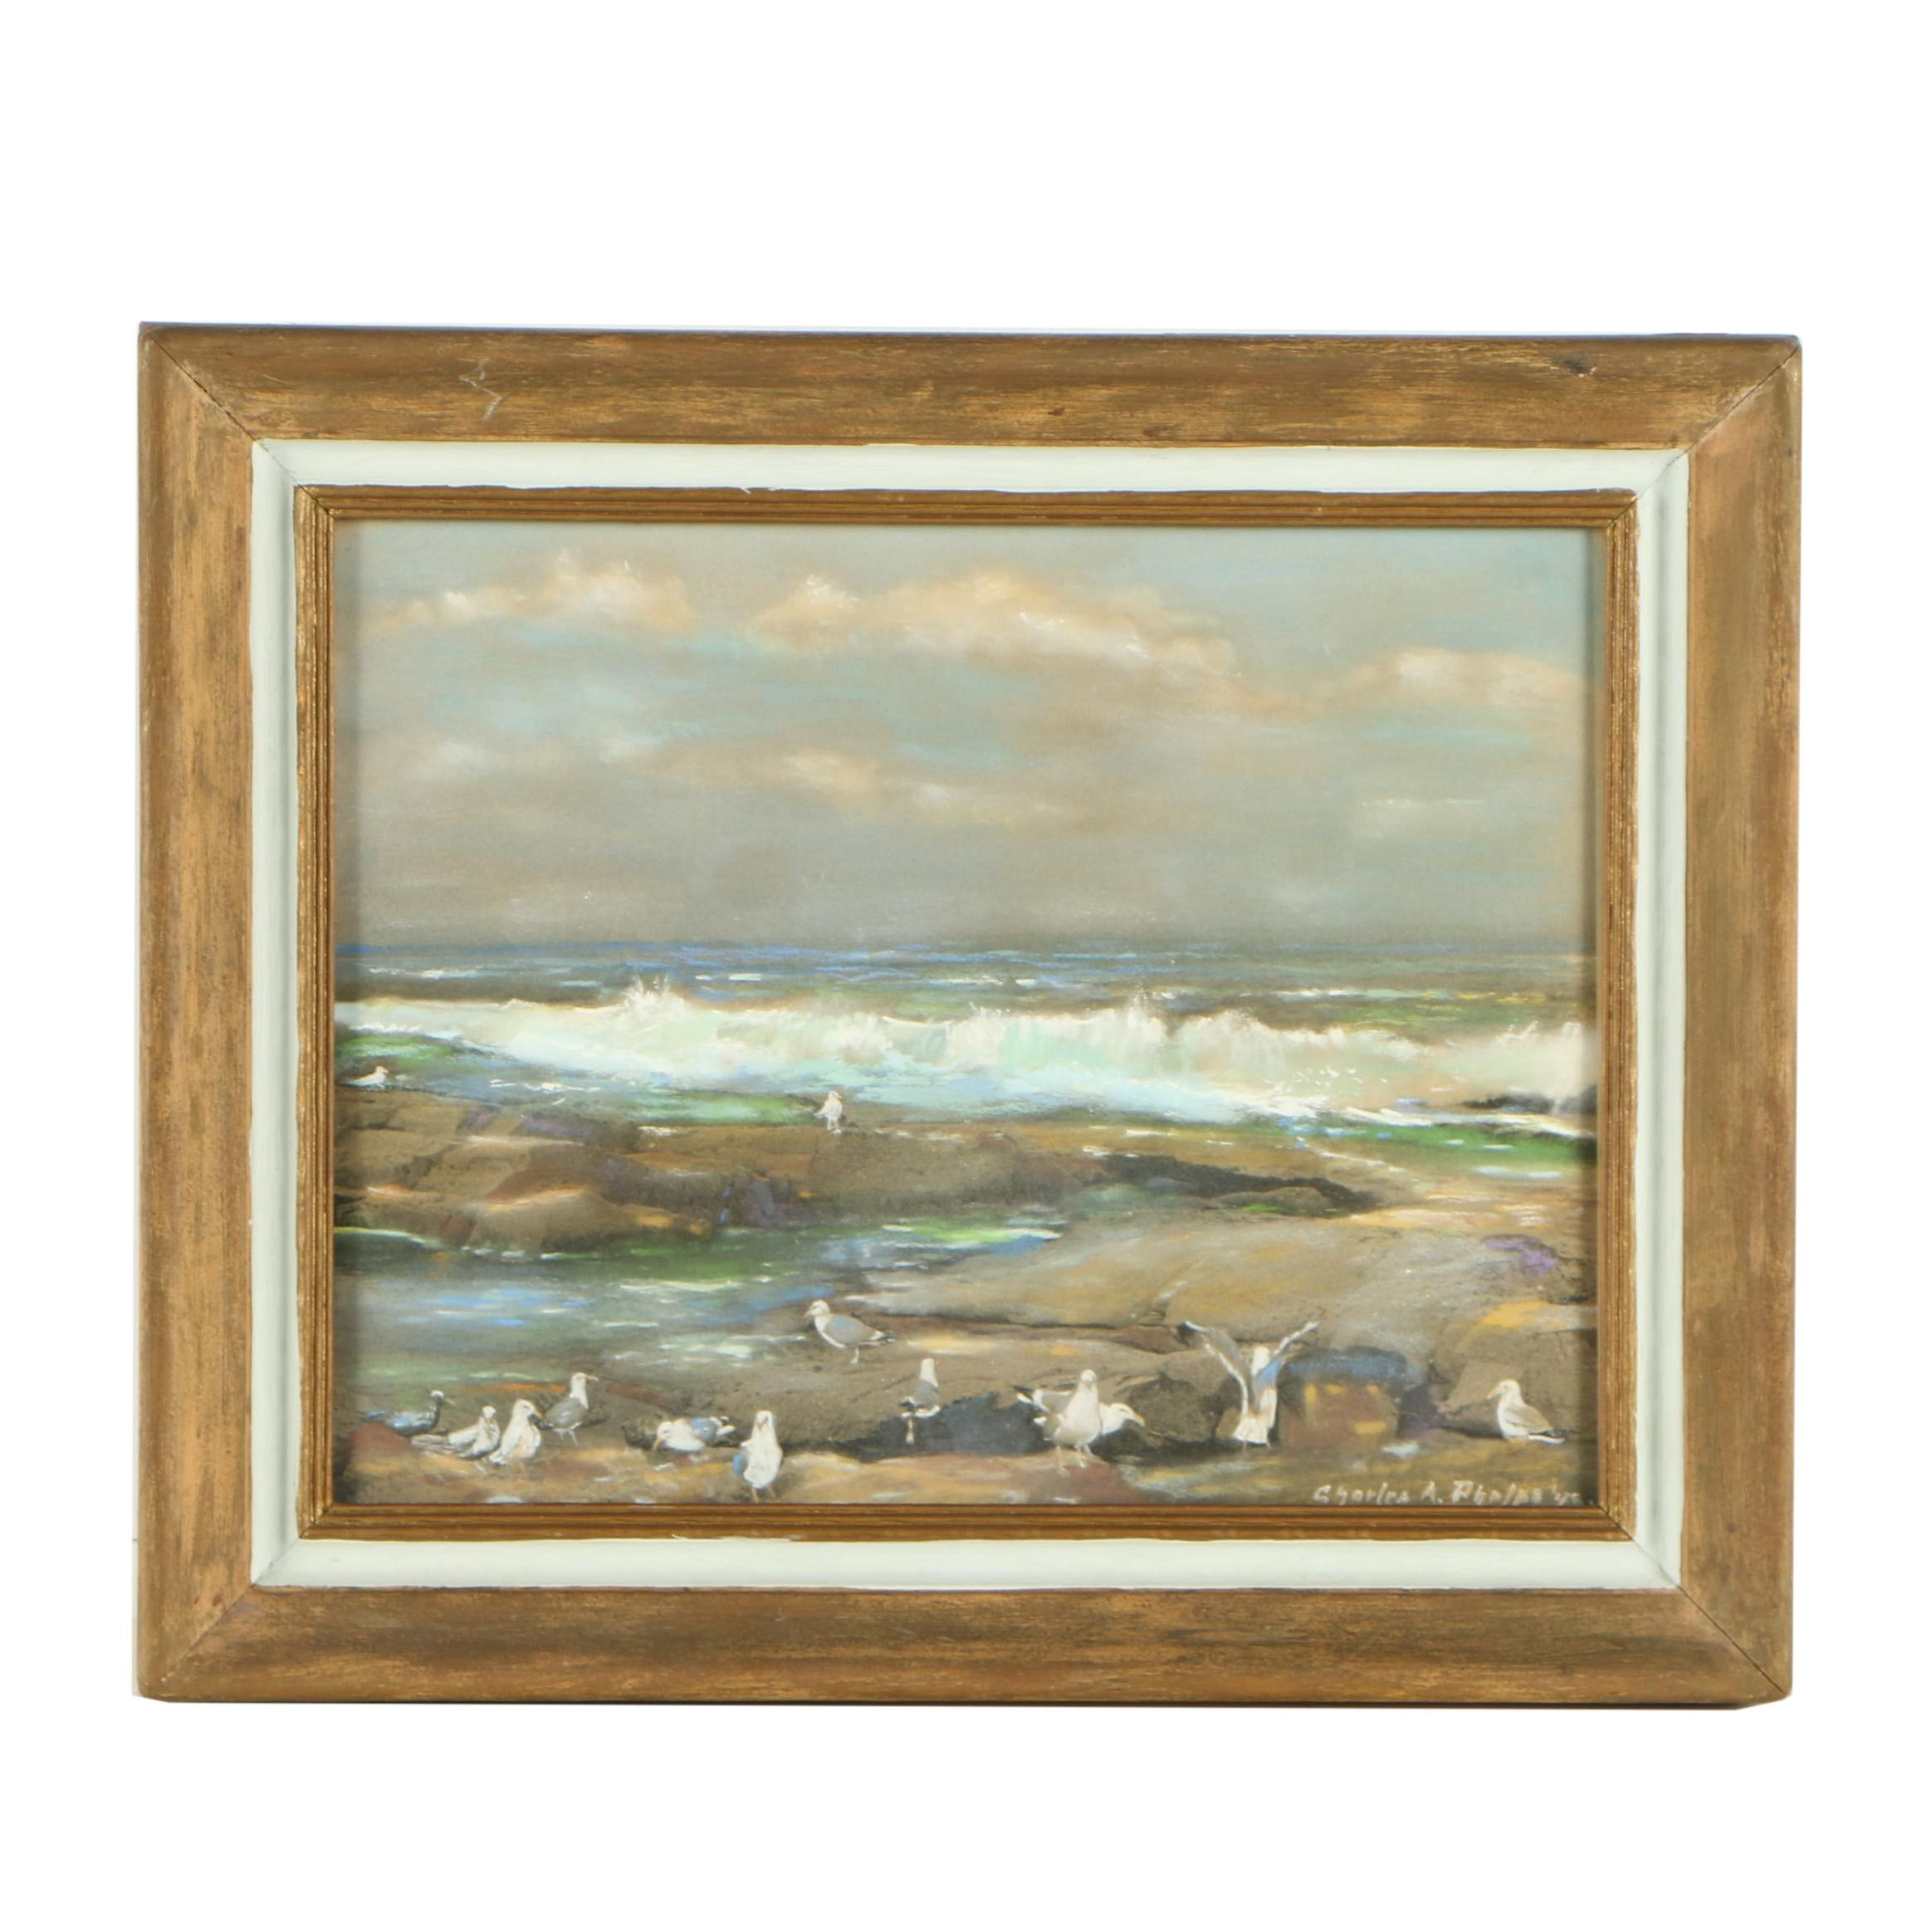 Charles A. Phelps Pastel Drawing of Seagulls on Ocean Shore